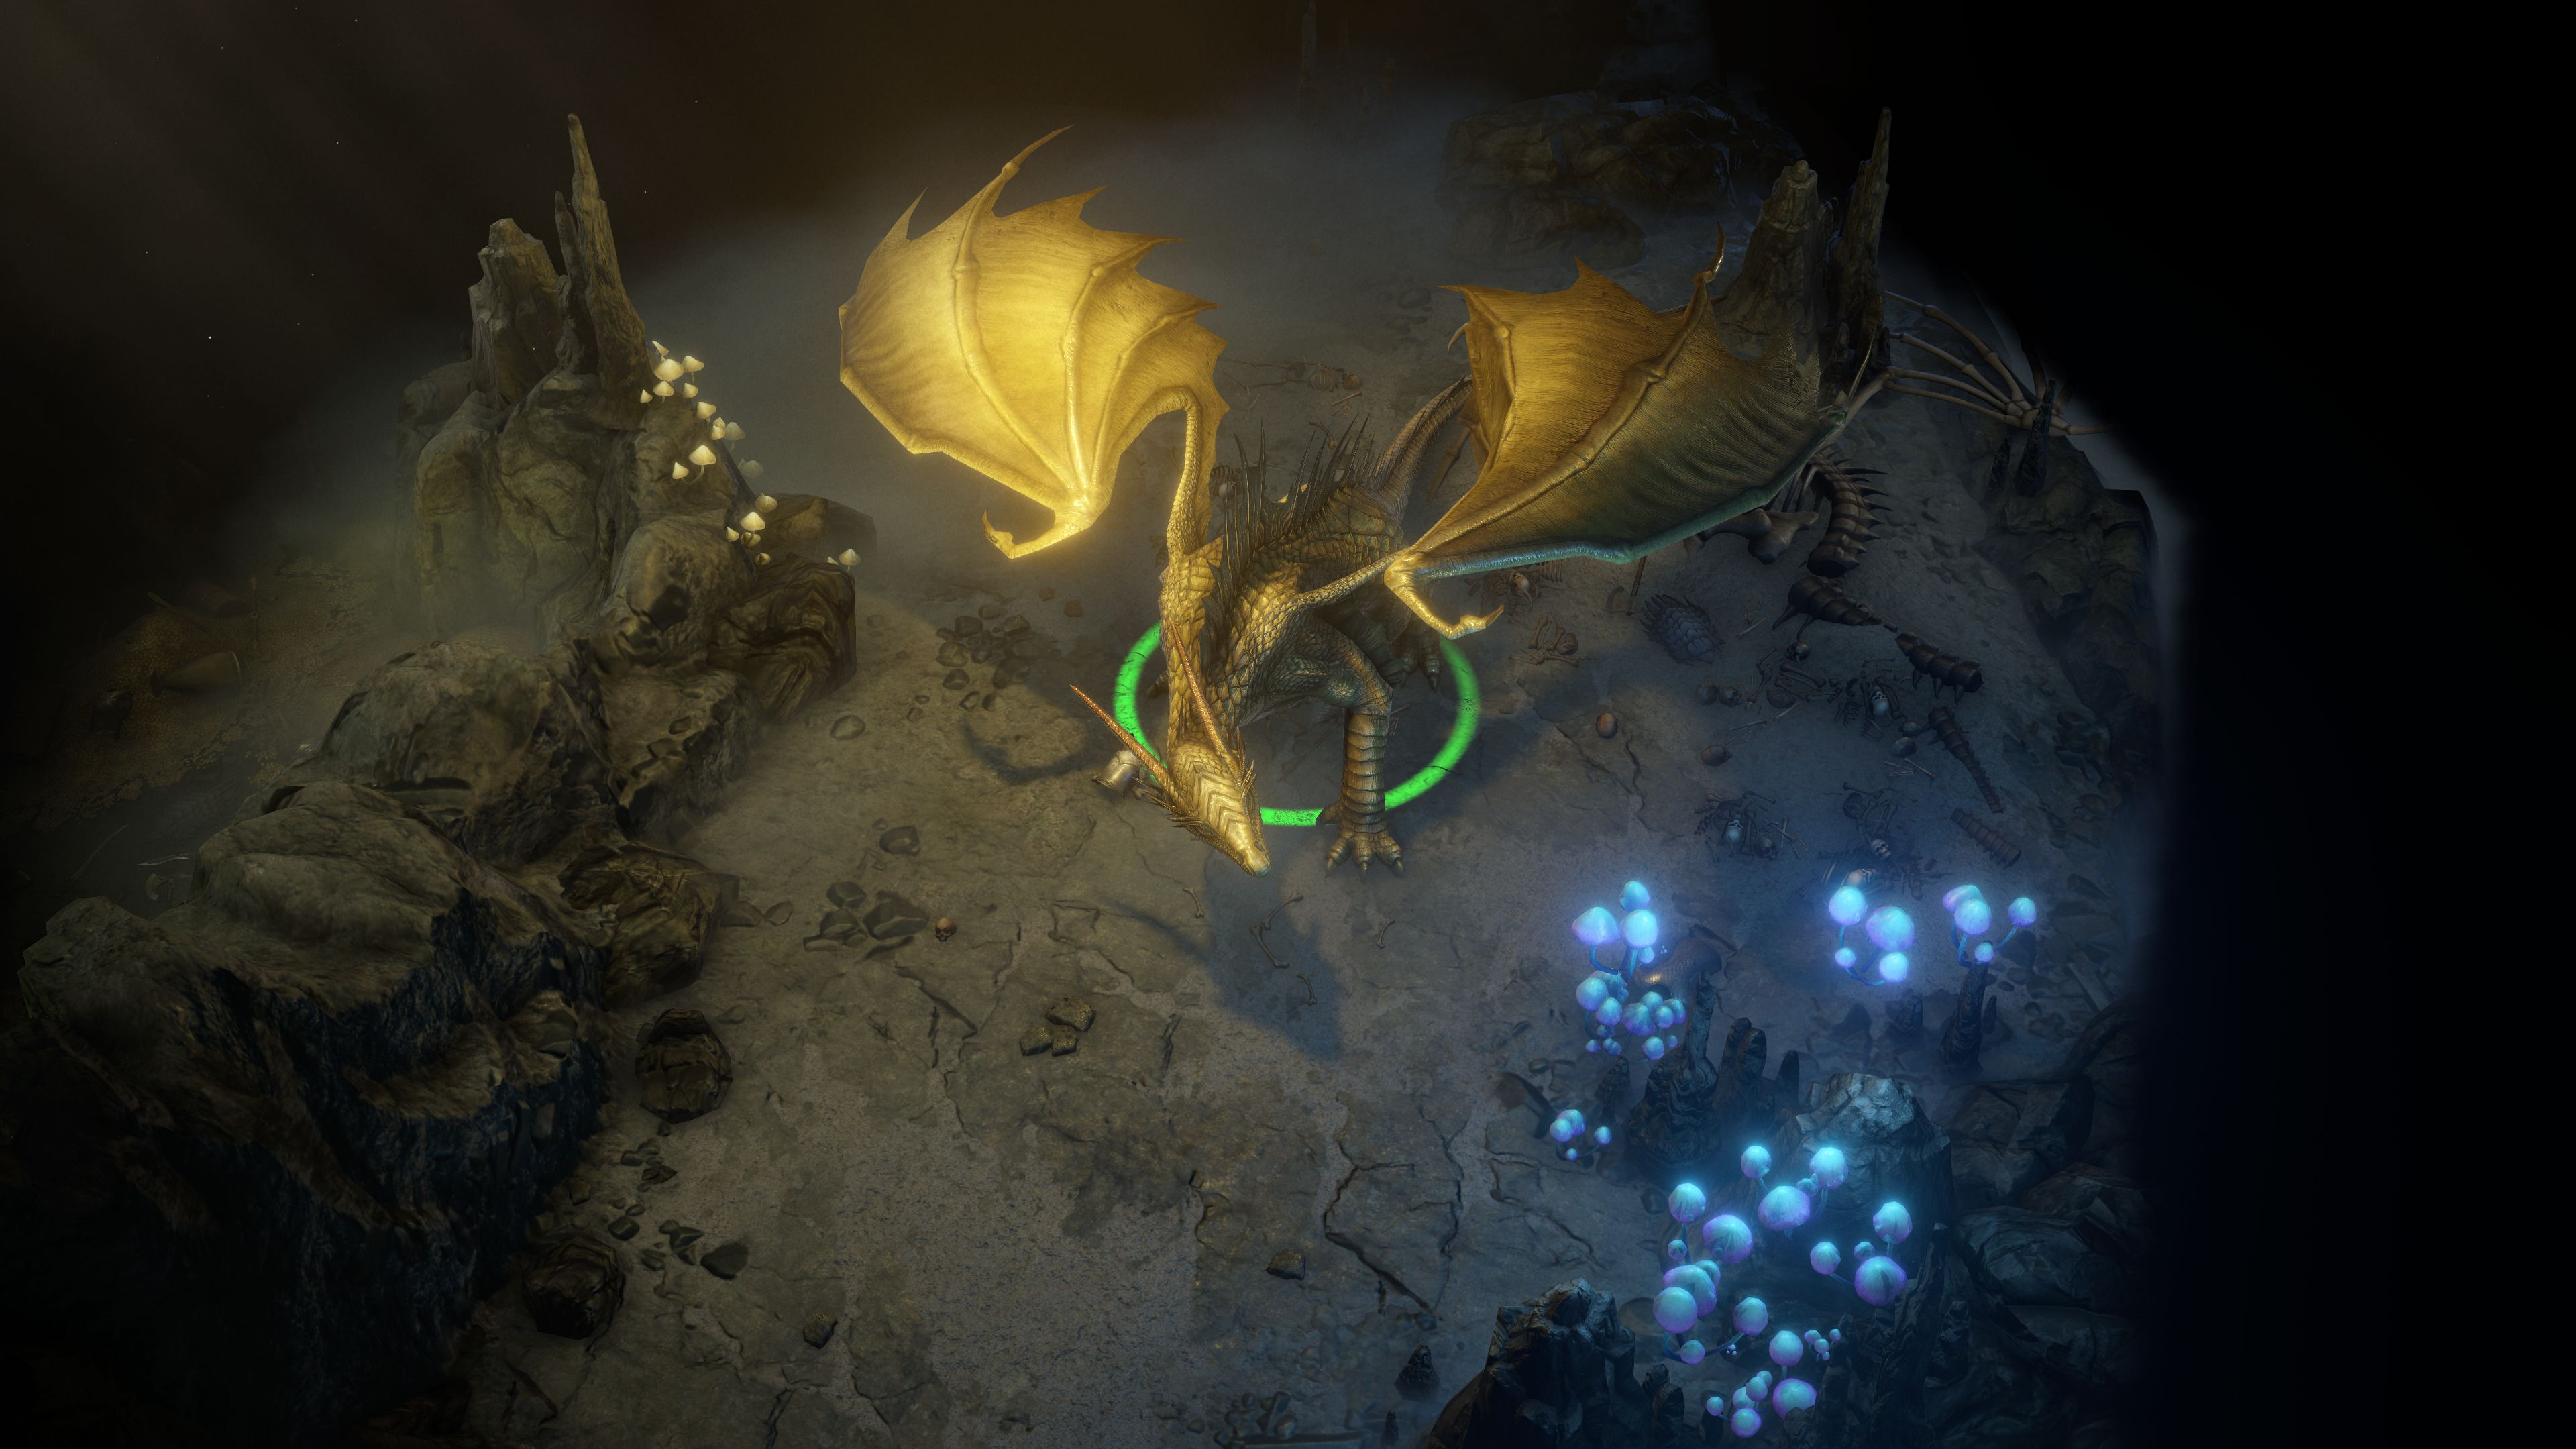 A gold dragon in a cave